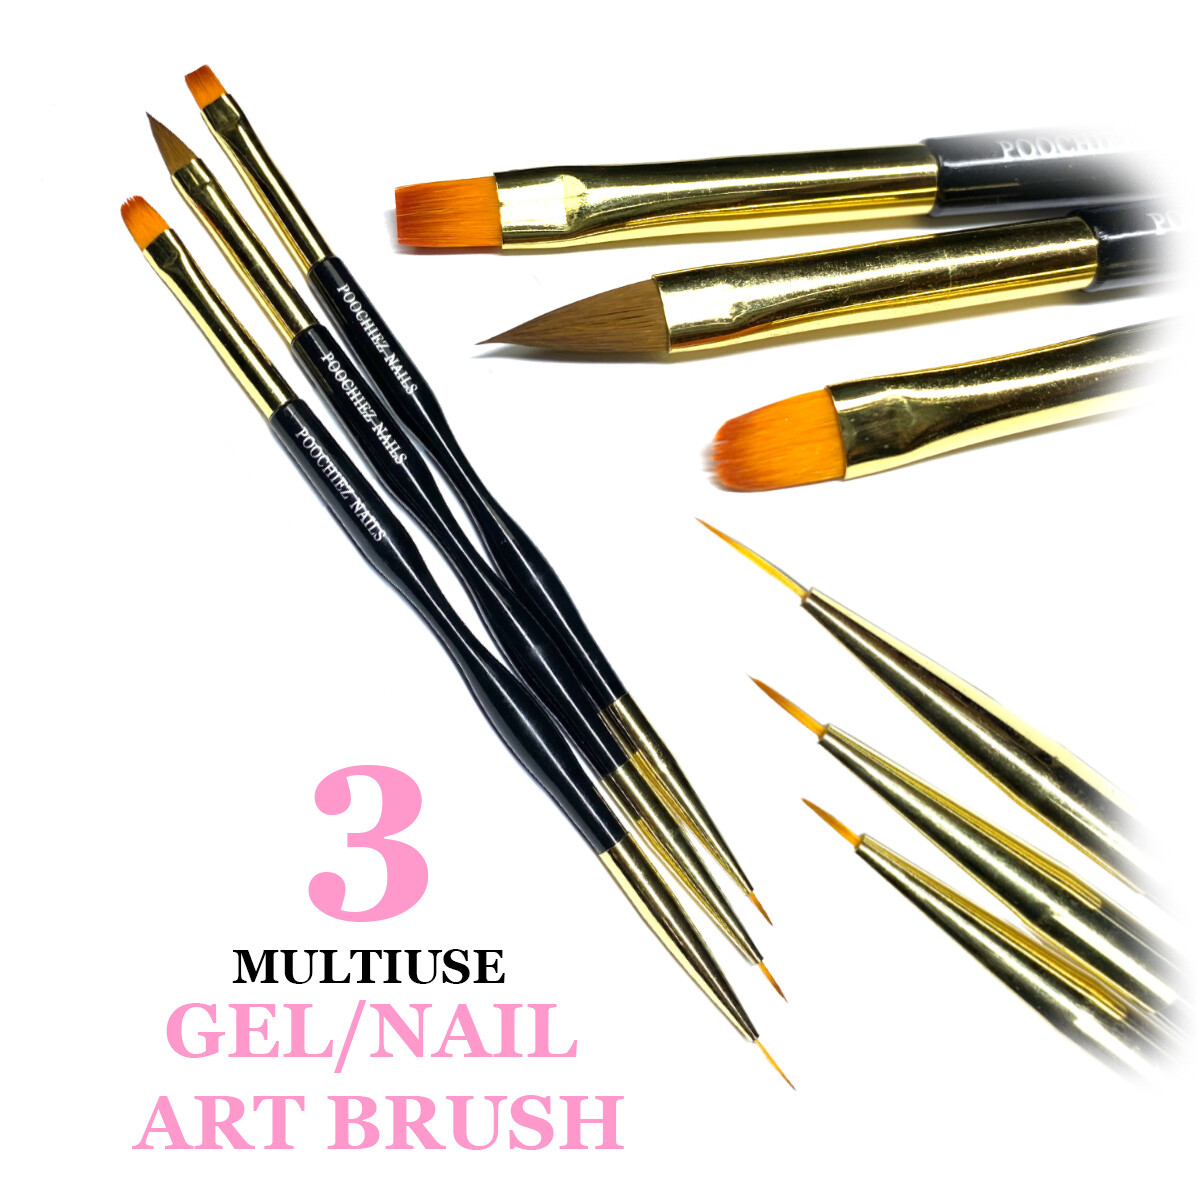 GEL BRUSH/ NAIL ART BRUSH 3pack